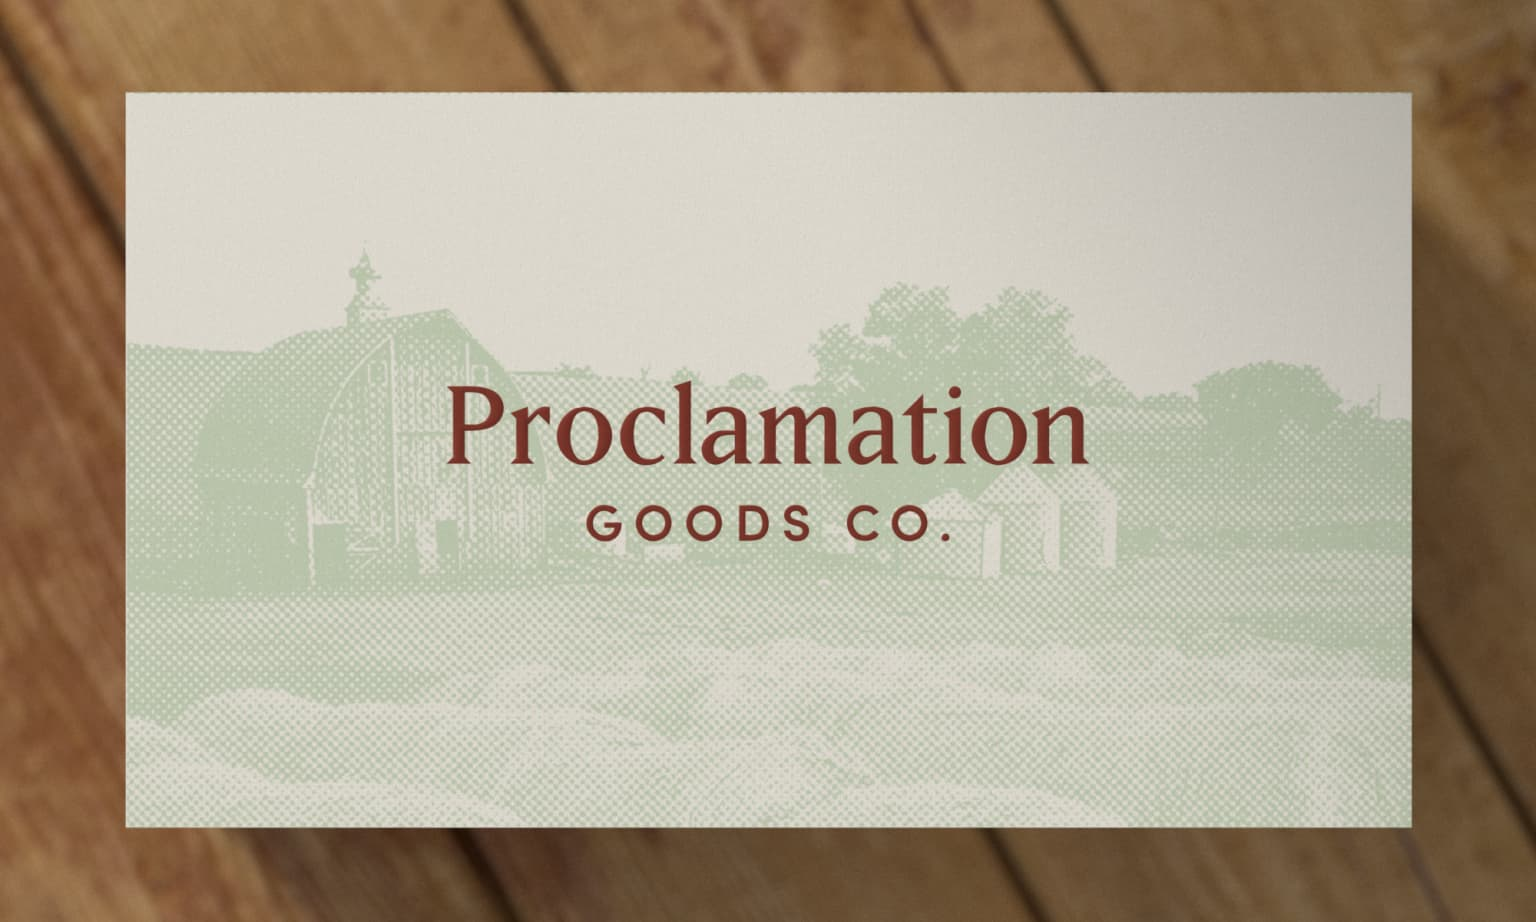 Proclamation Goods Co.